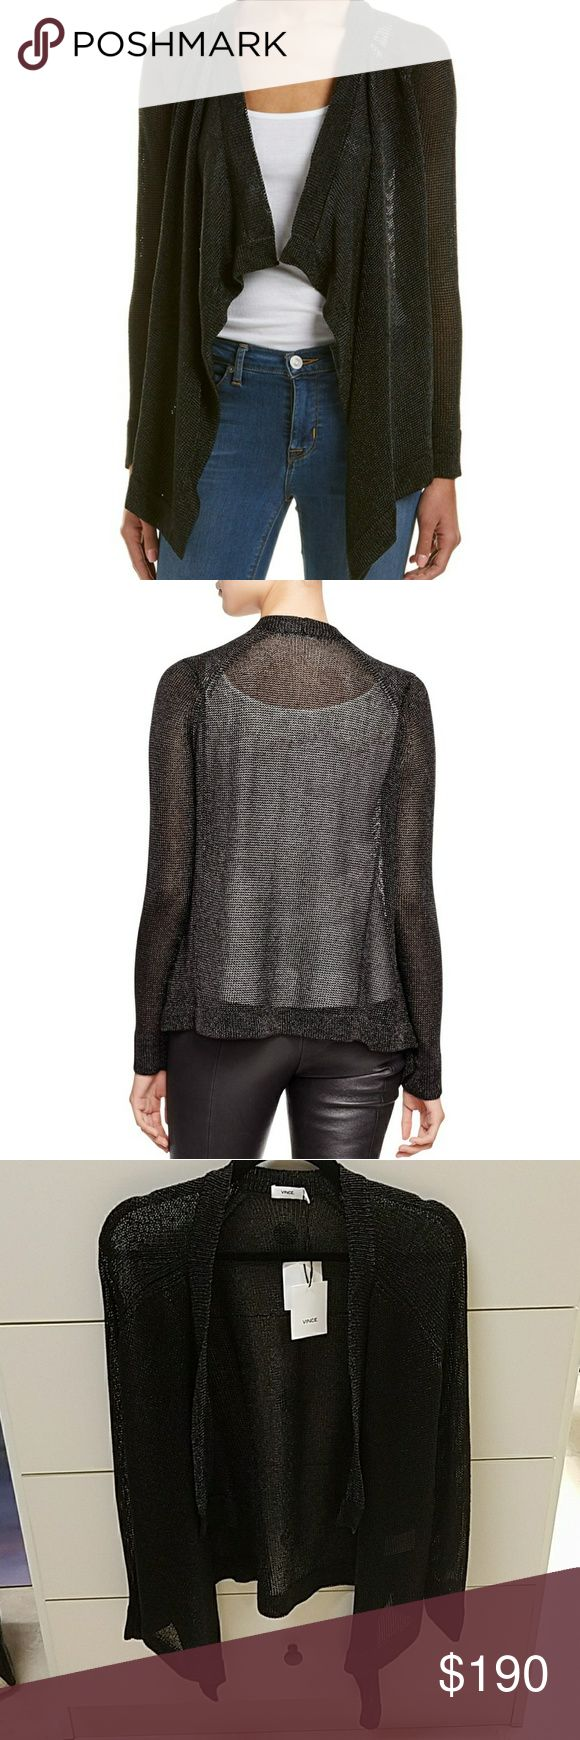 Vince metallic cardigan This is so rock-n-roll! It's a unique metallic texture you don't be able to keep your hands off! vince Sweaters Cardigans